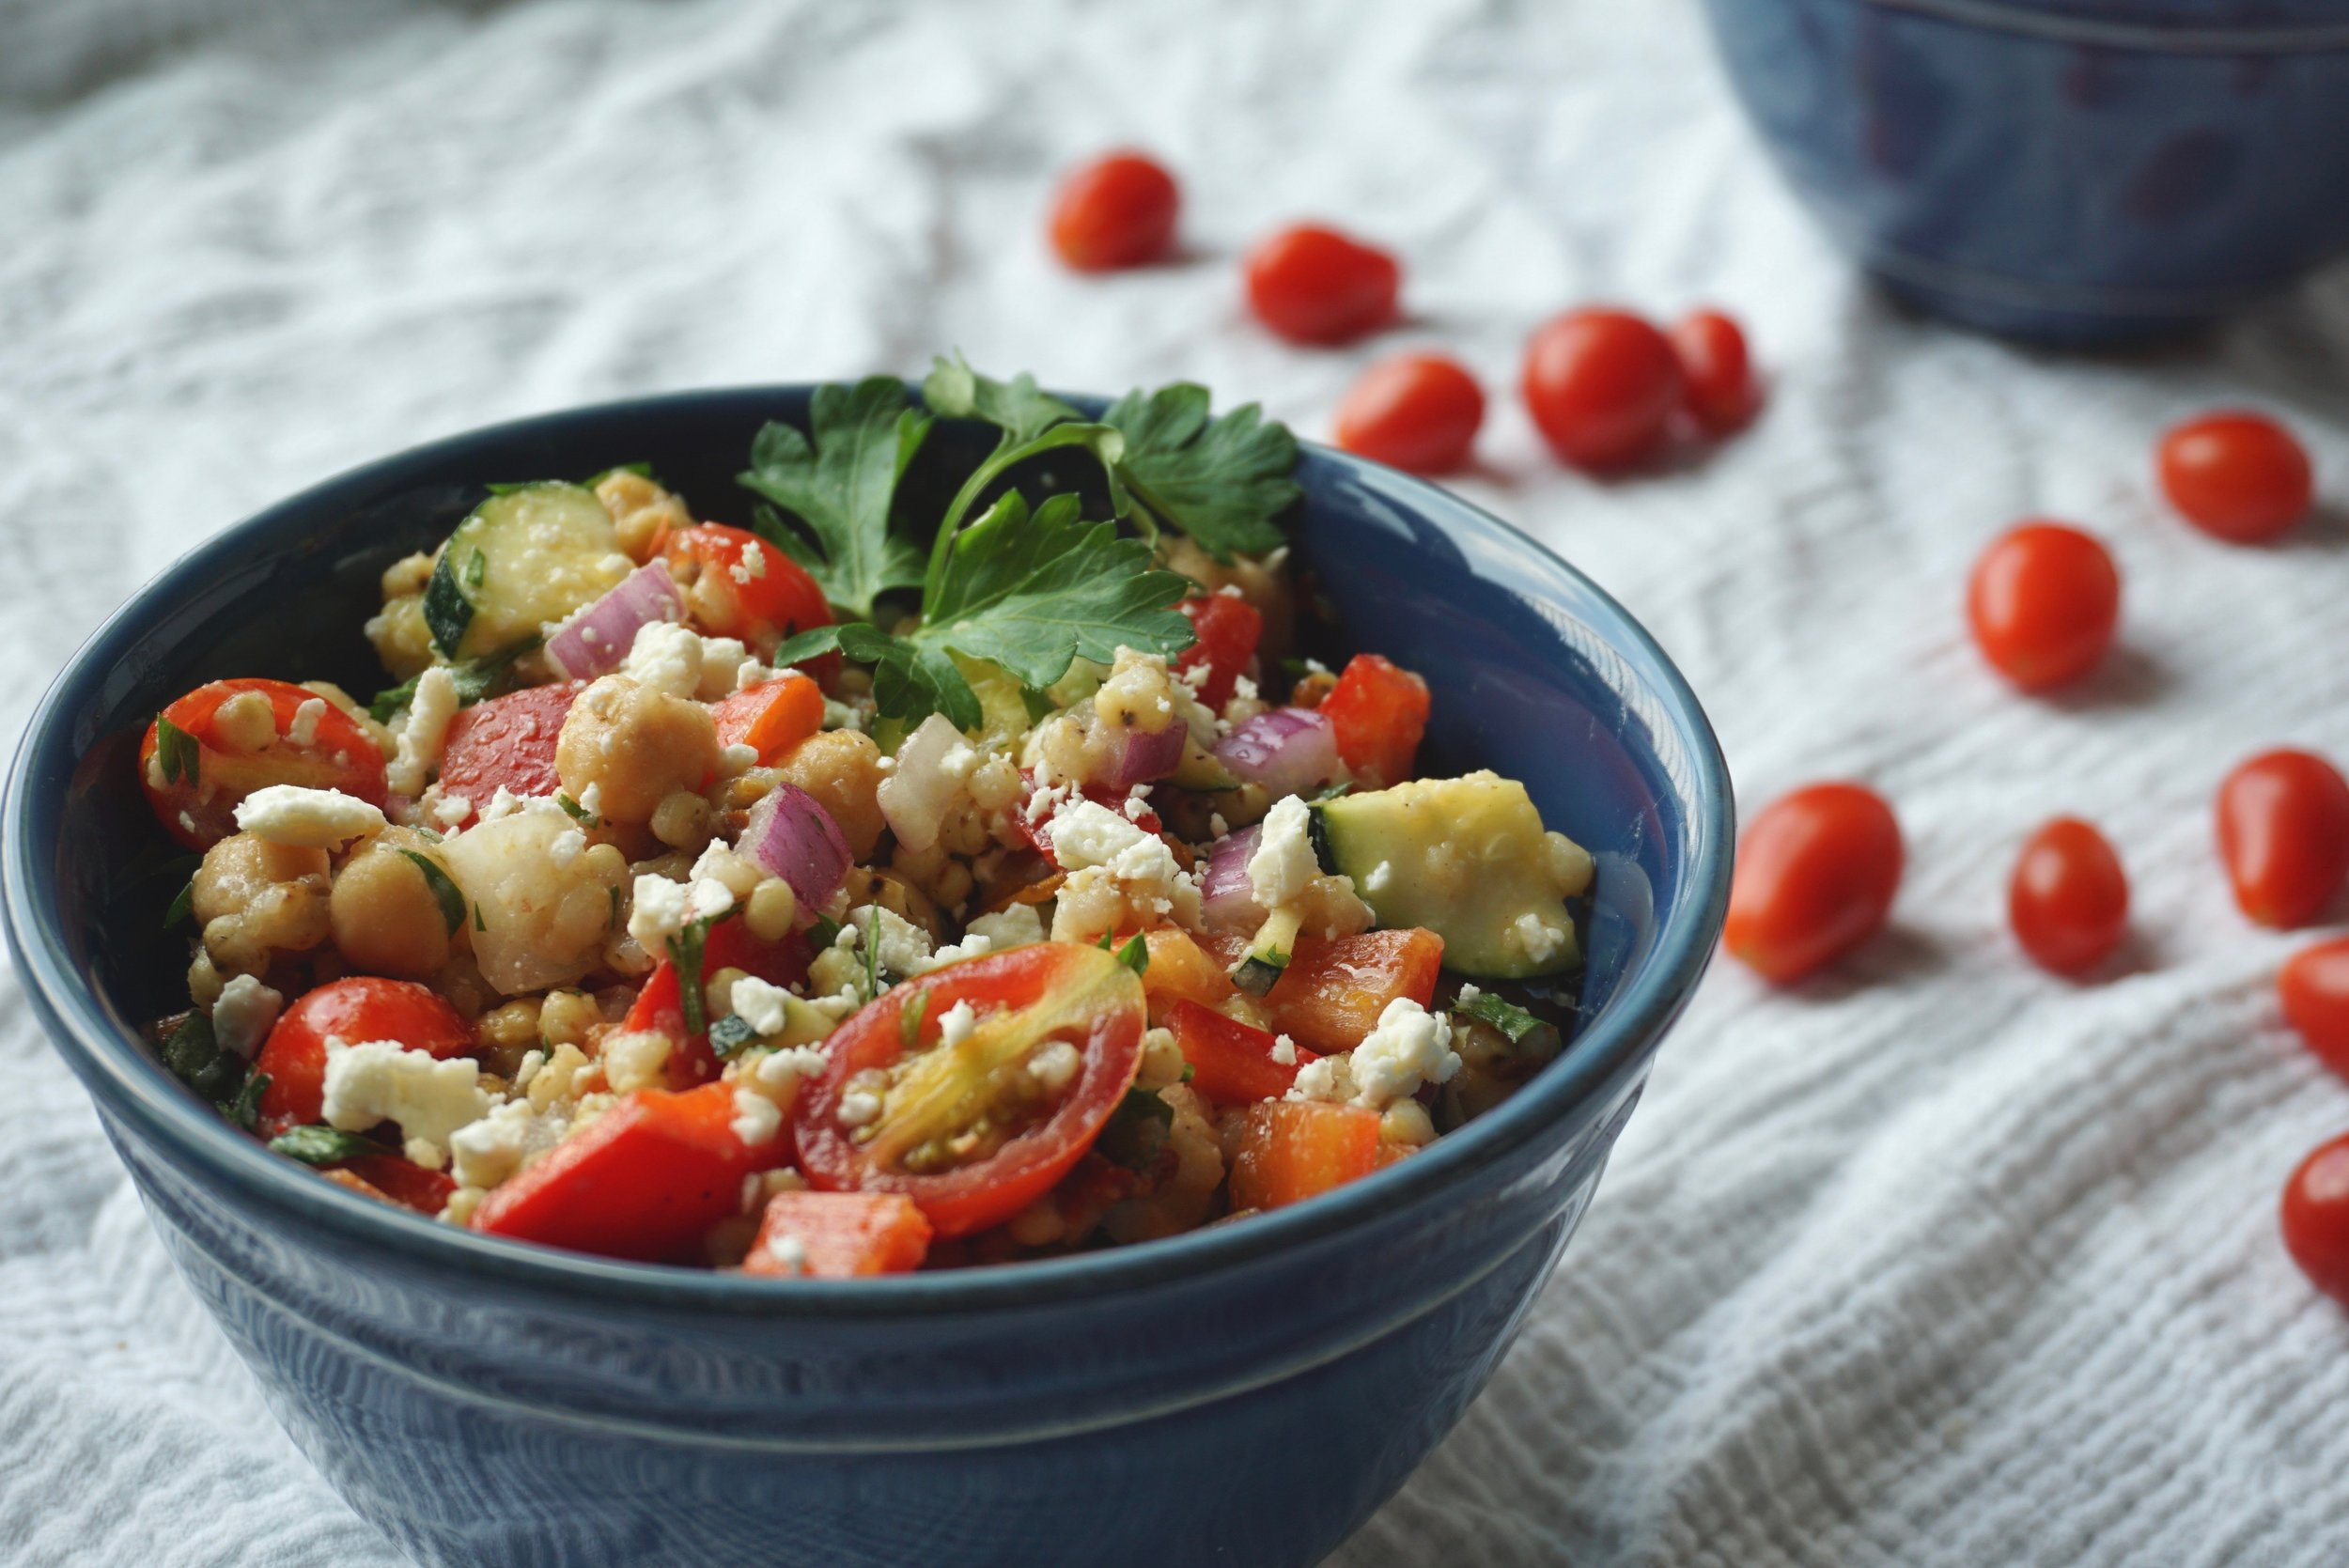 Mediterranean Whole Grain Salad